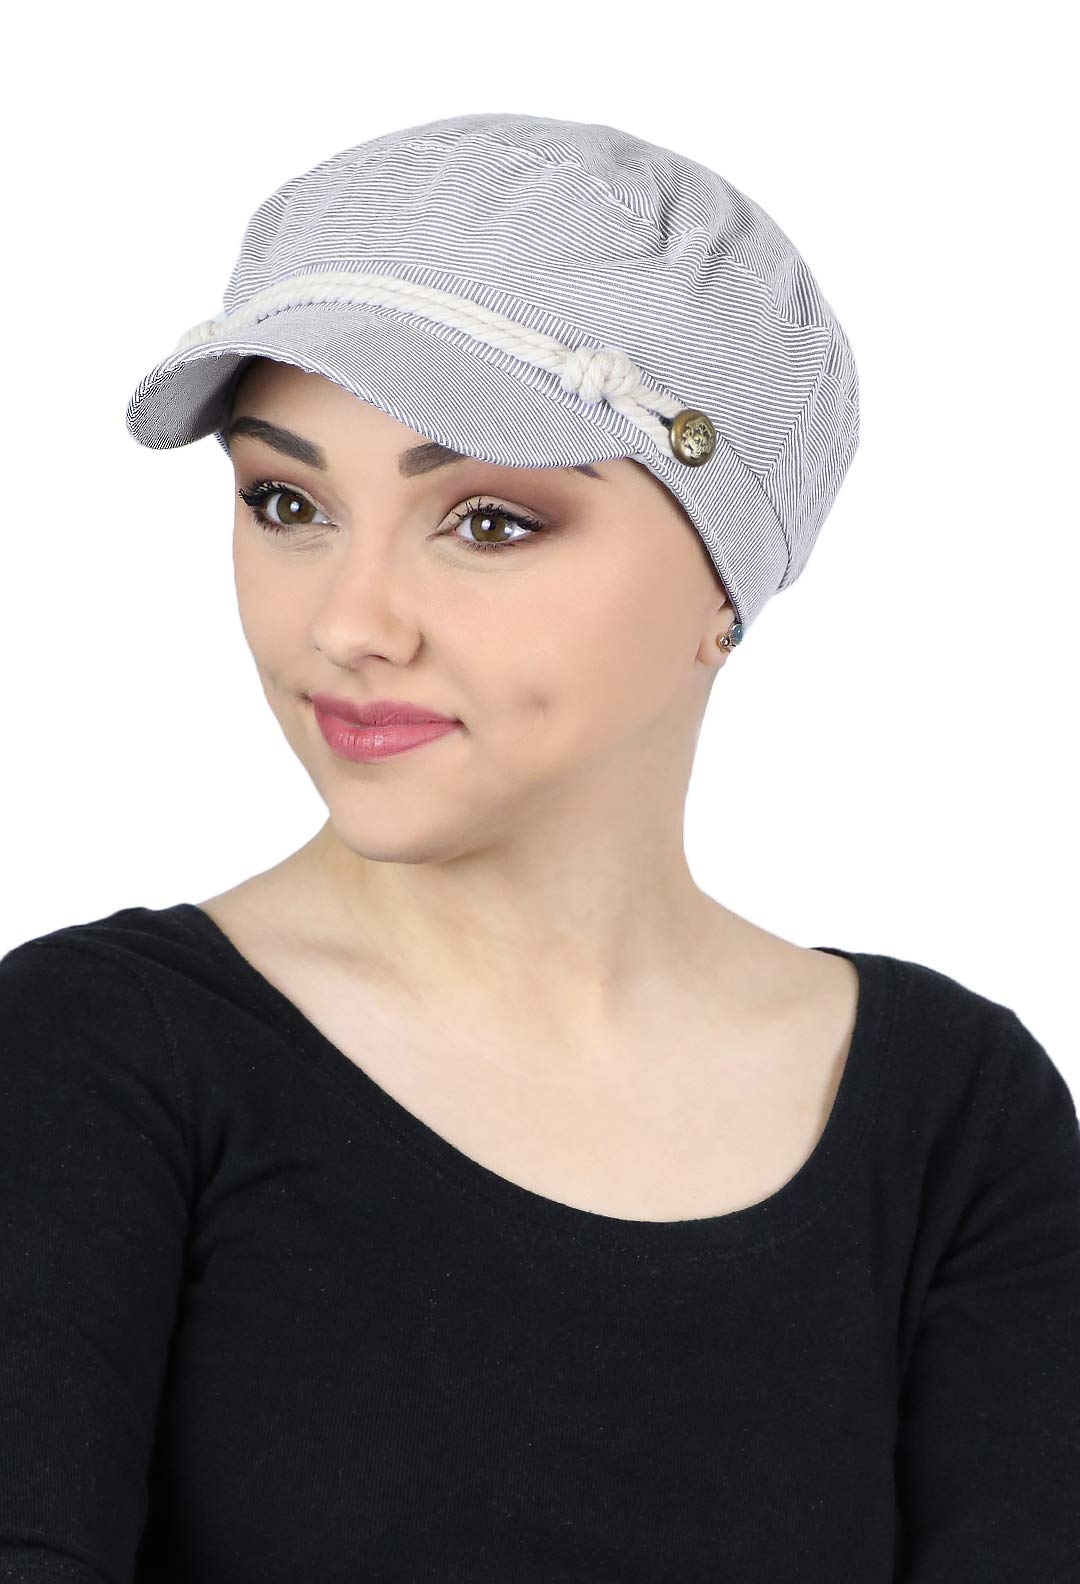 Summer Hats Beach Sun Newsboy Cap for Women Ladies Nautical Cabbie Chemo Headwear Head Coverings Seersucker (Black)